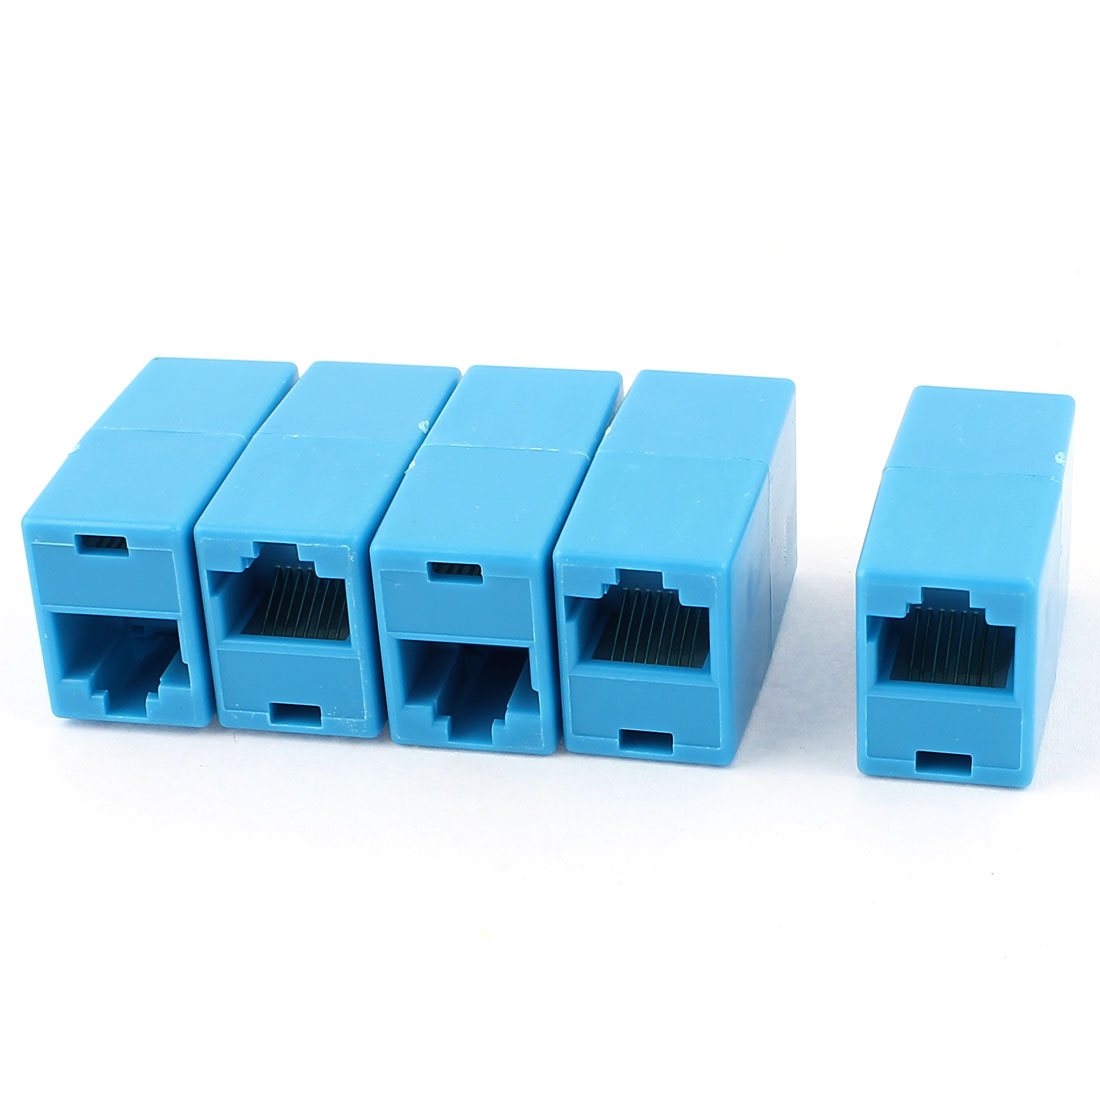 5Pcs RJ45 8P8C F/F Network Cable Connector Extender Coupler Joiner Blue